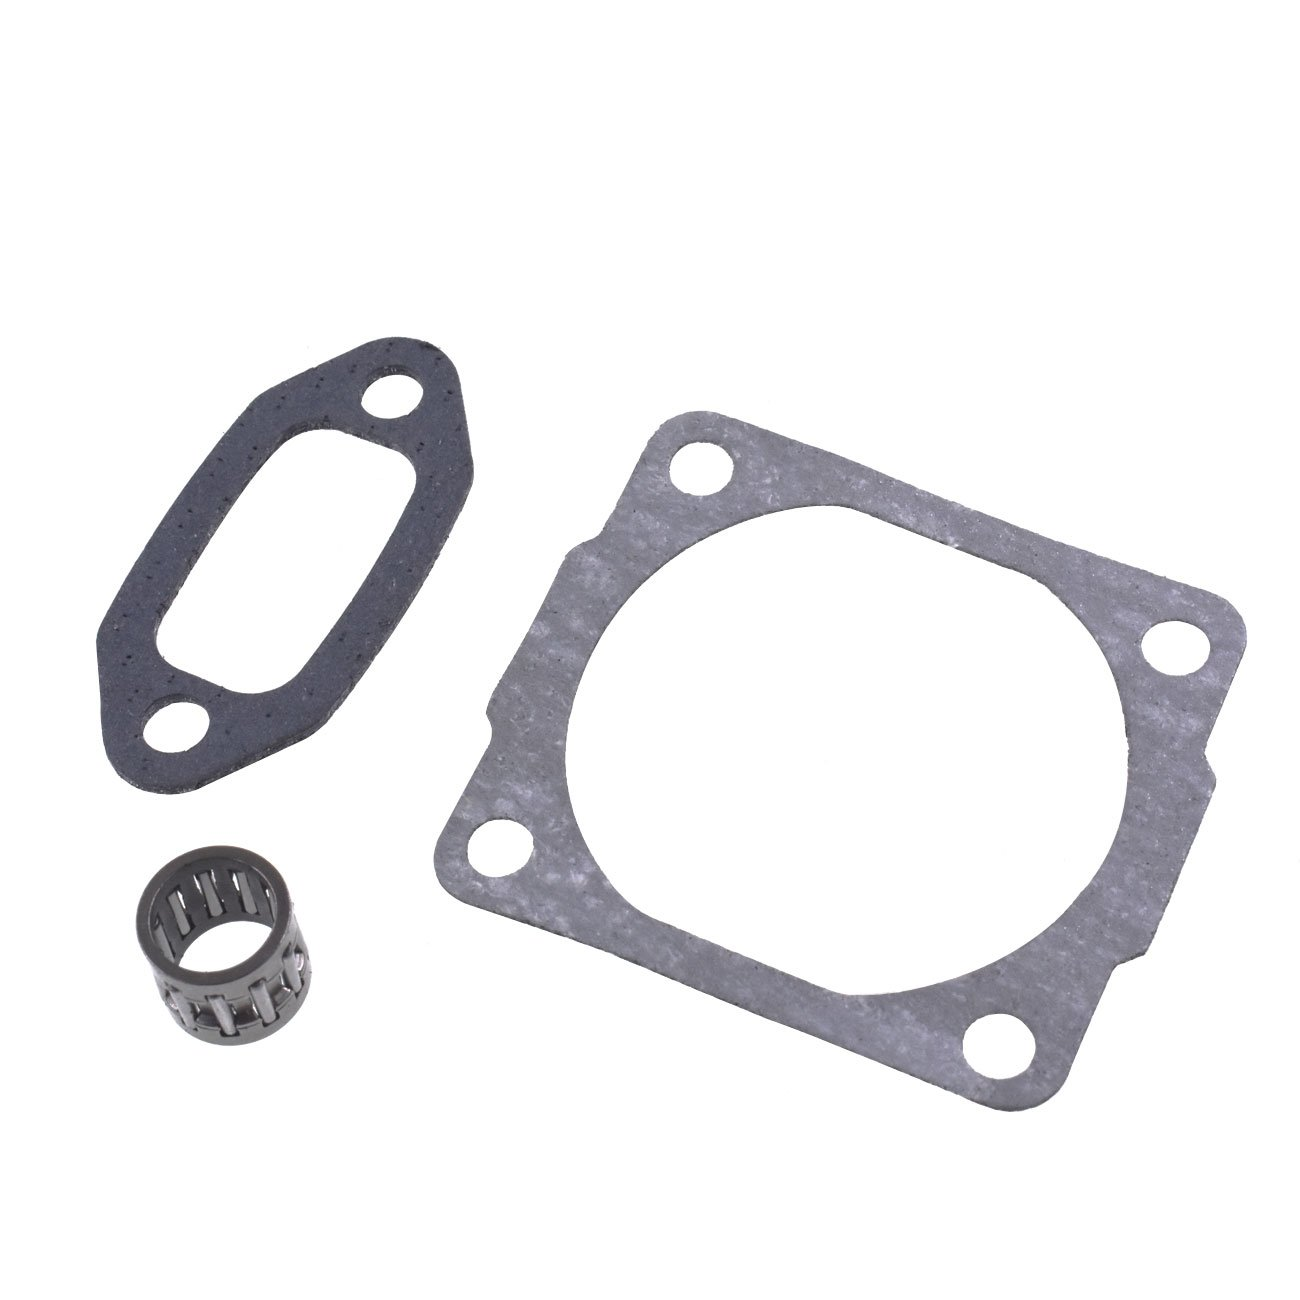 JRL Exhaust Gasket&Cylinder Gasket For Stihl MS260 026 Chainsaw Parts & Accs Kang Tai